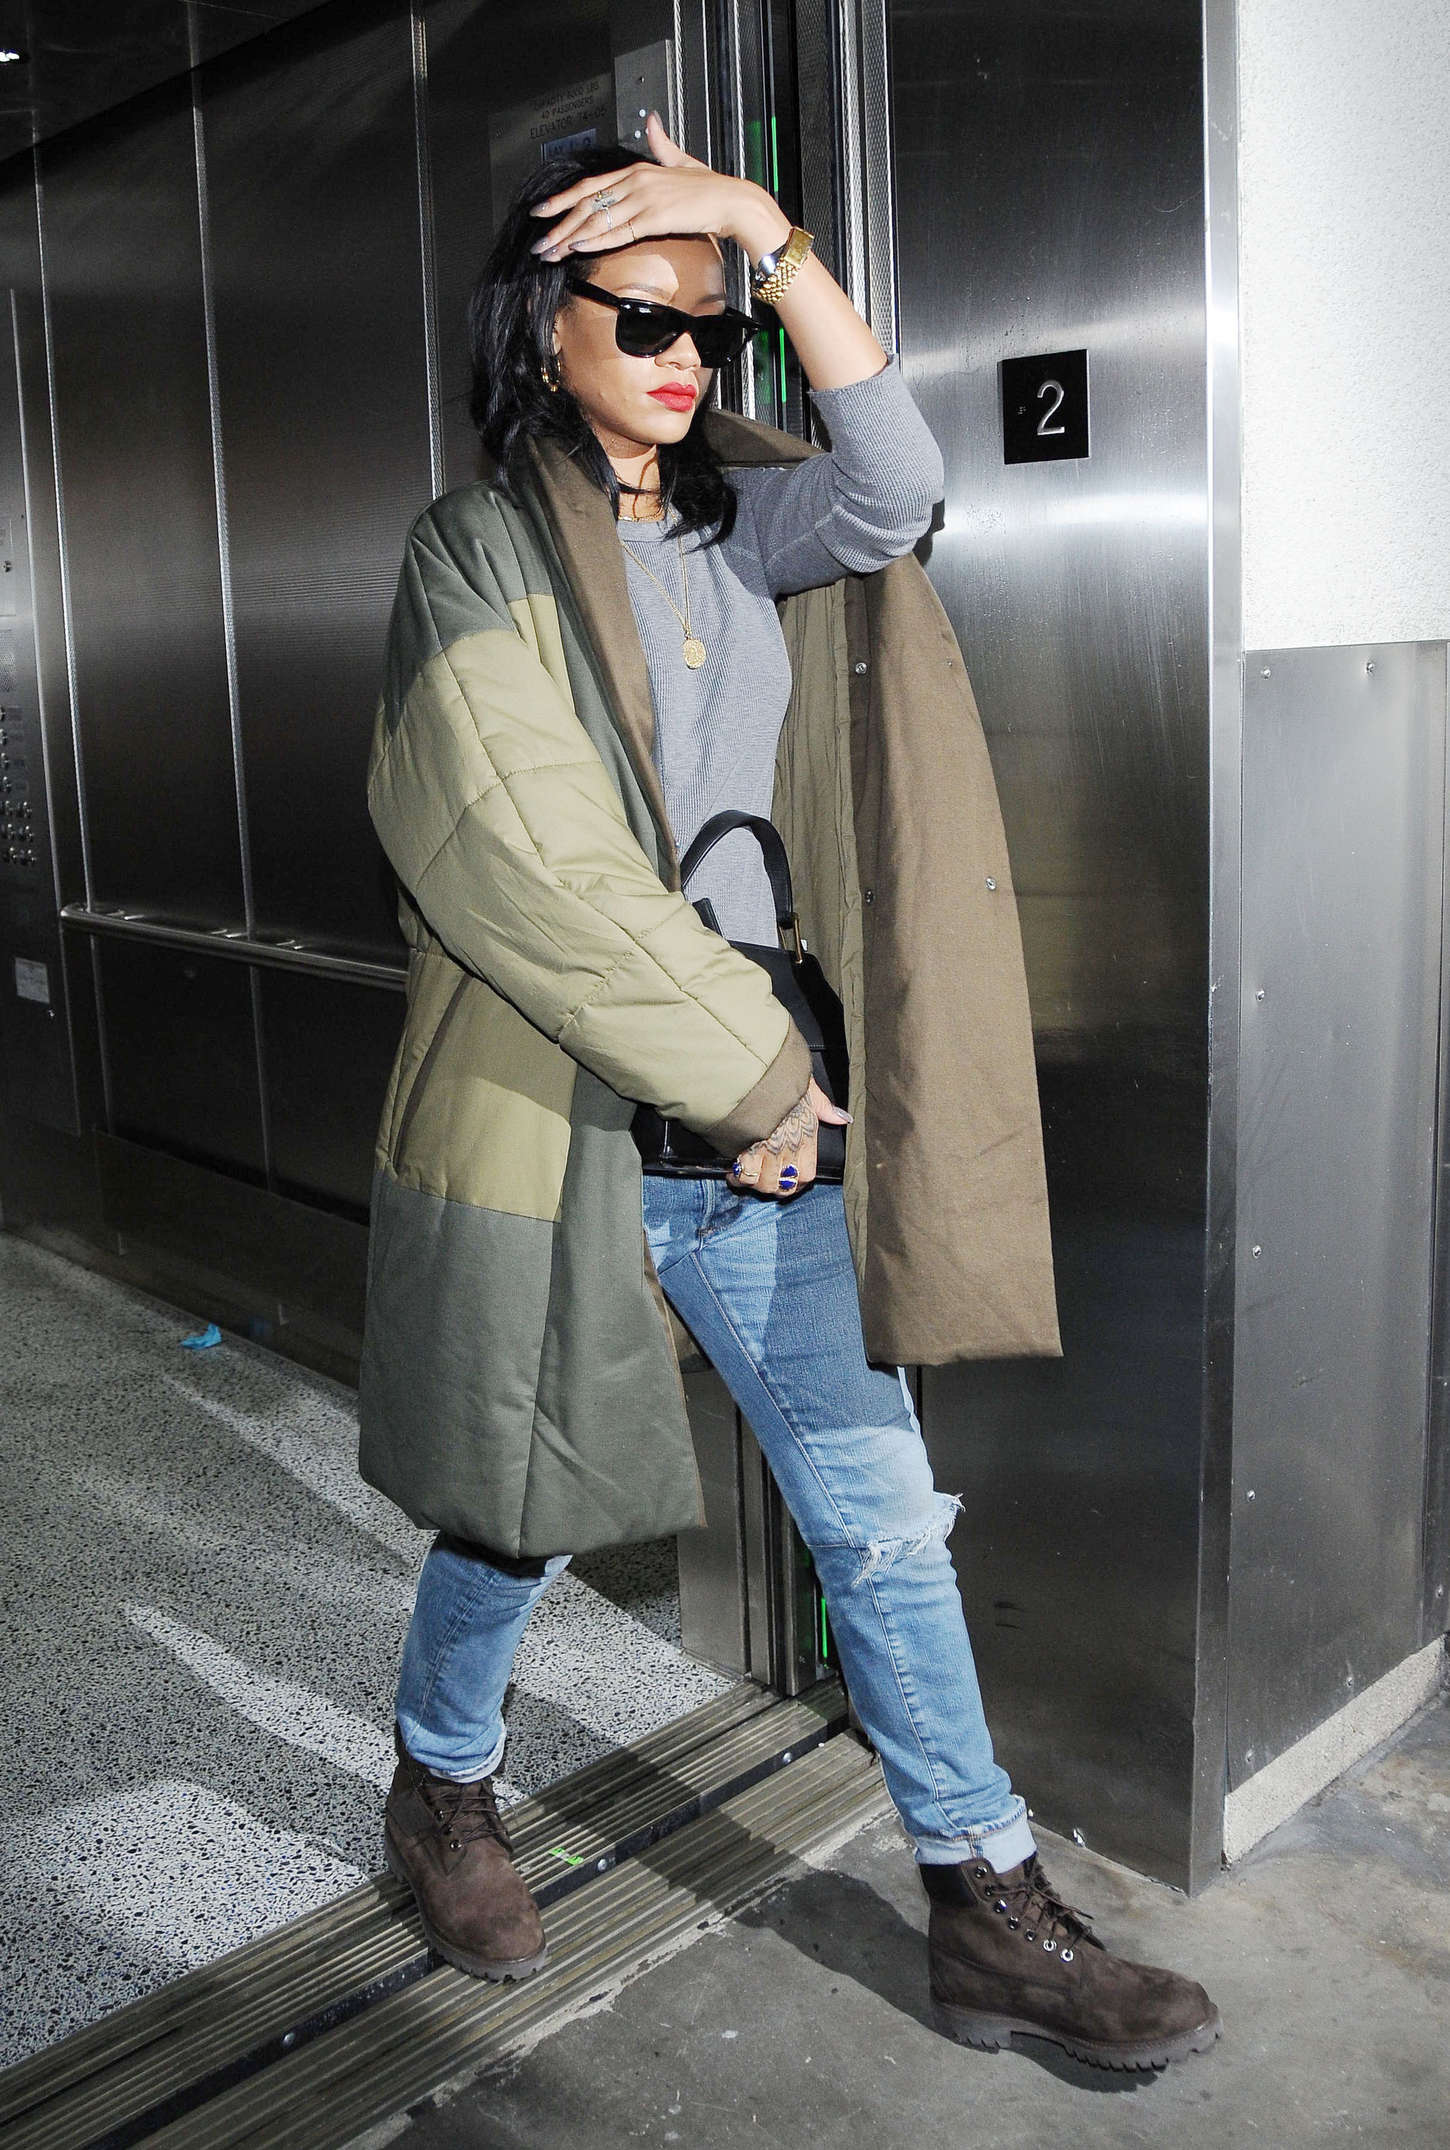 Rihanna - Arriving at LAX Airport in Los Angeles